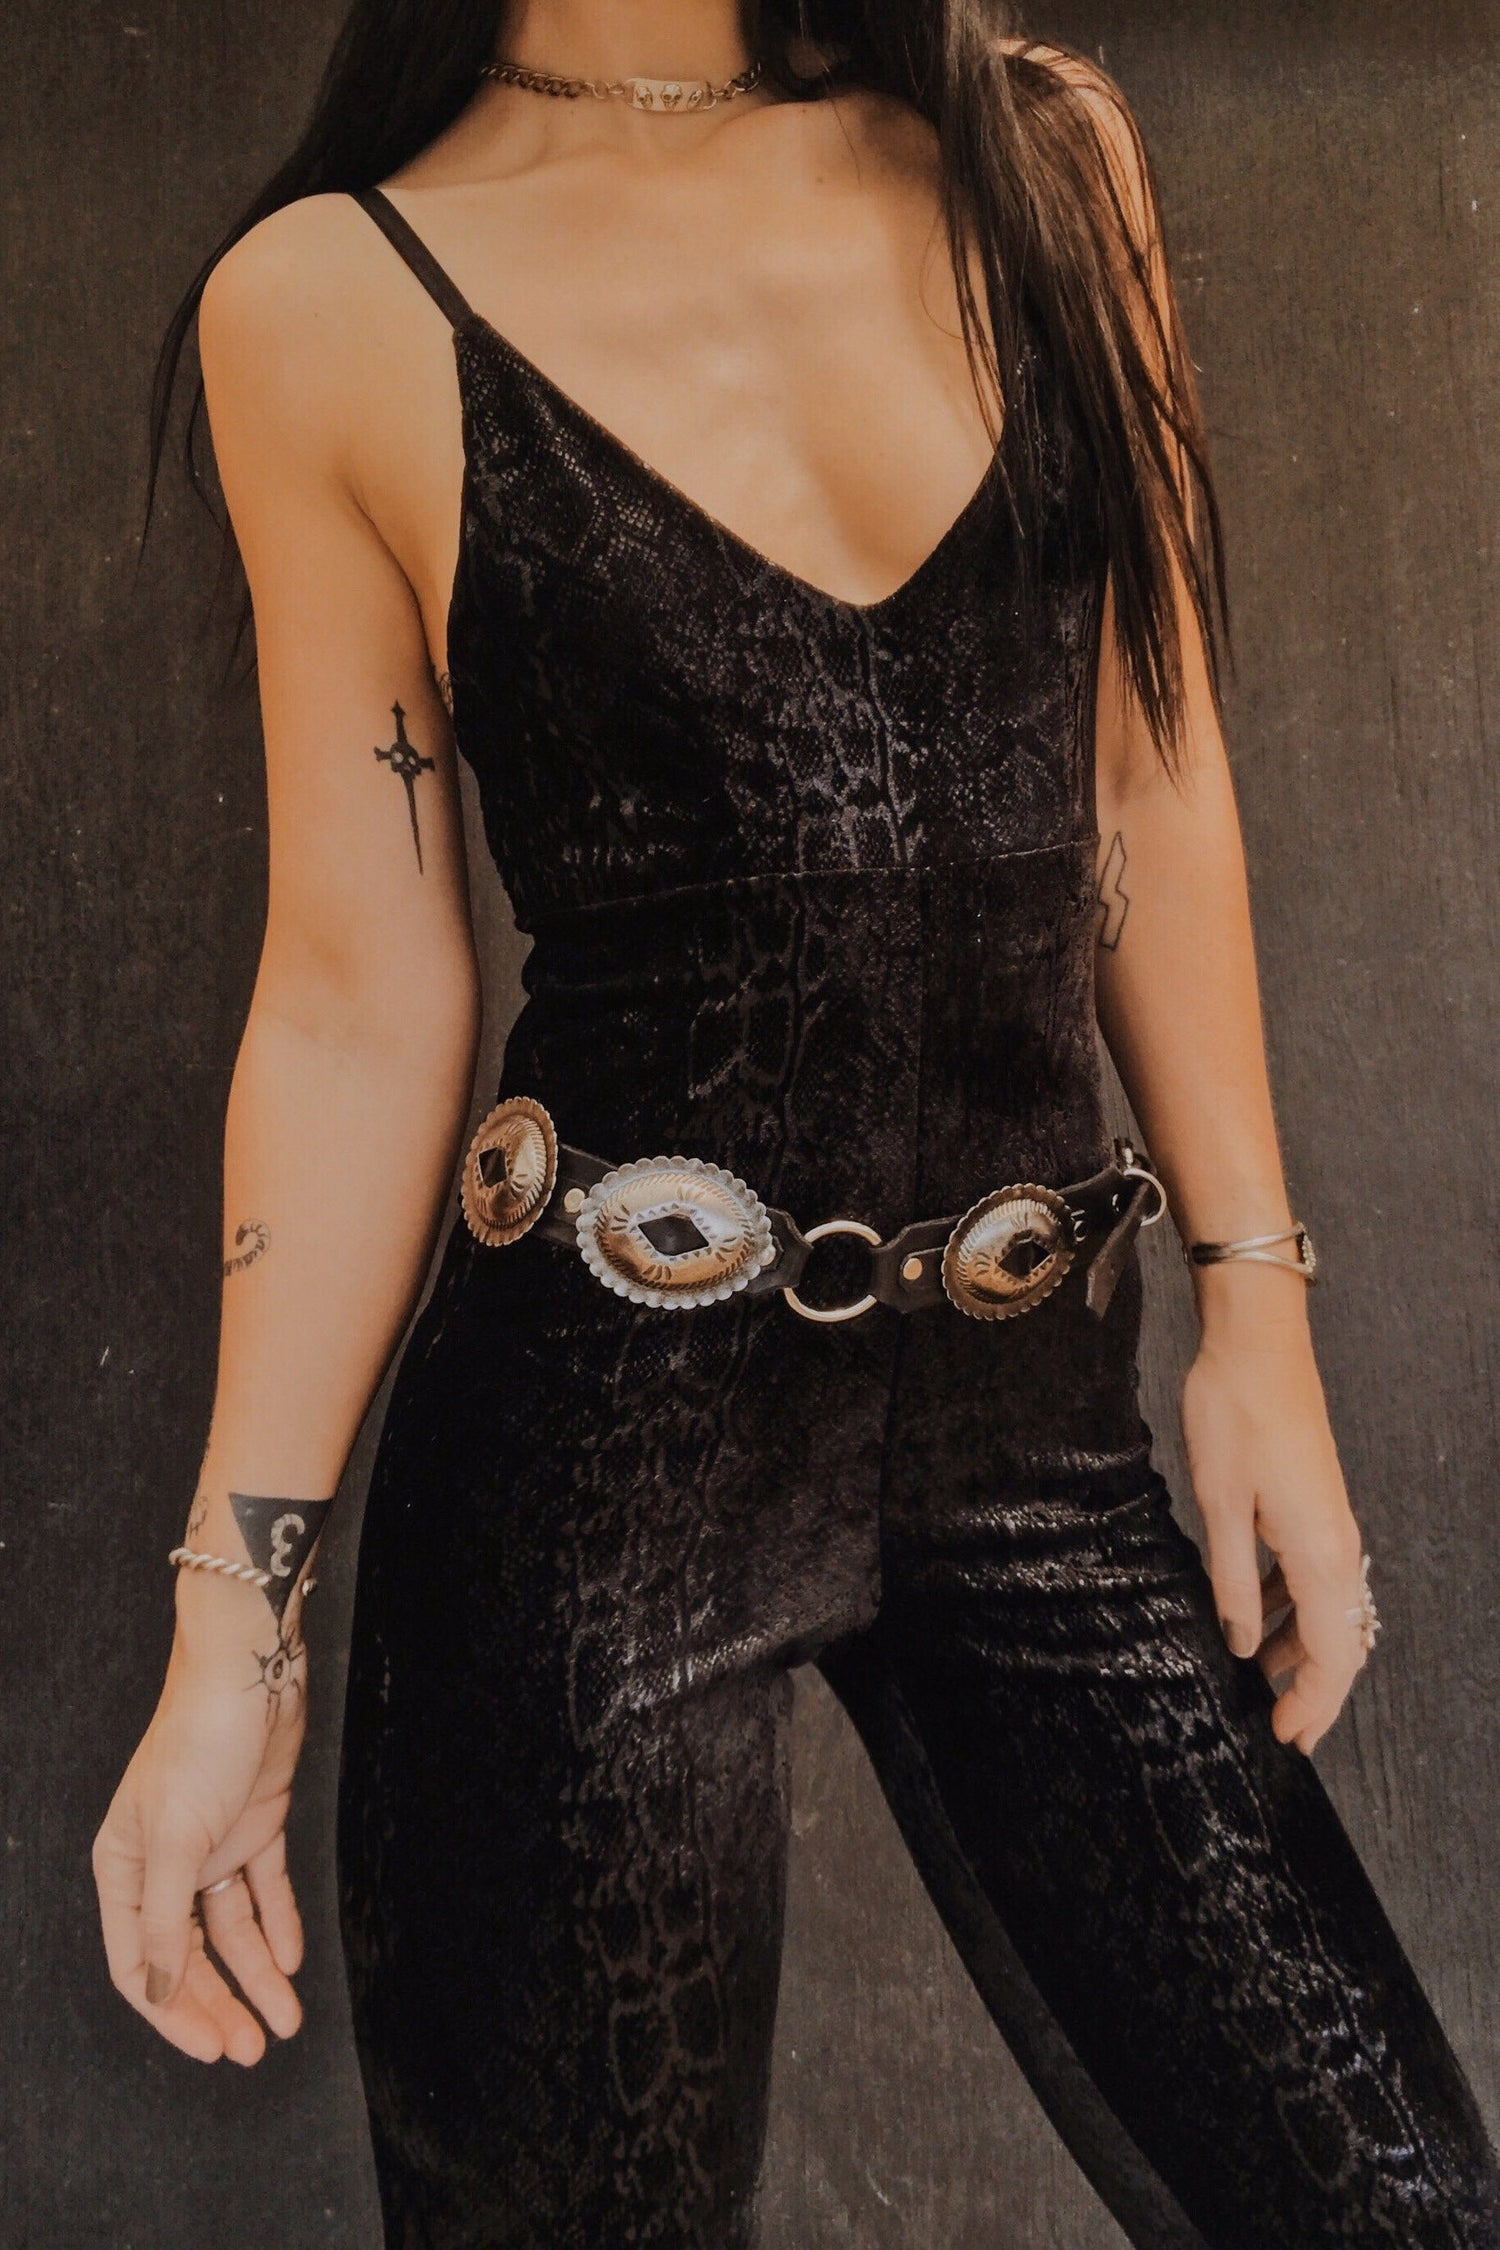 Black Leather Slotted Concho Belt by Hell Bent Leather (Various Sizes Available), Accessories, Hell Bent Leather